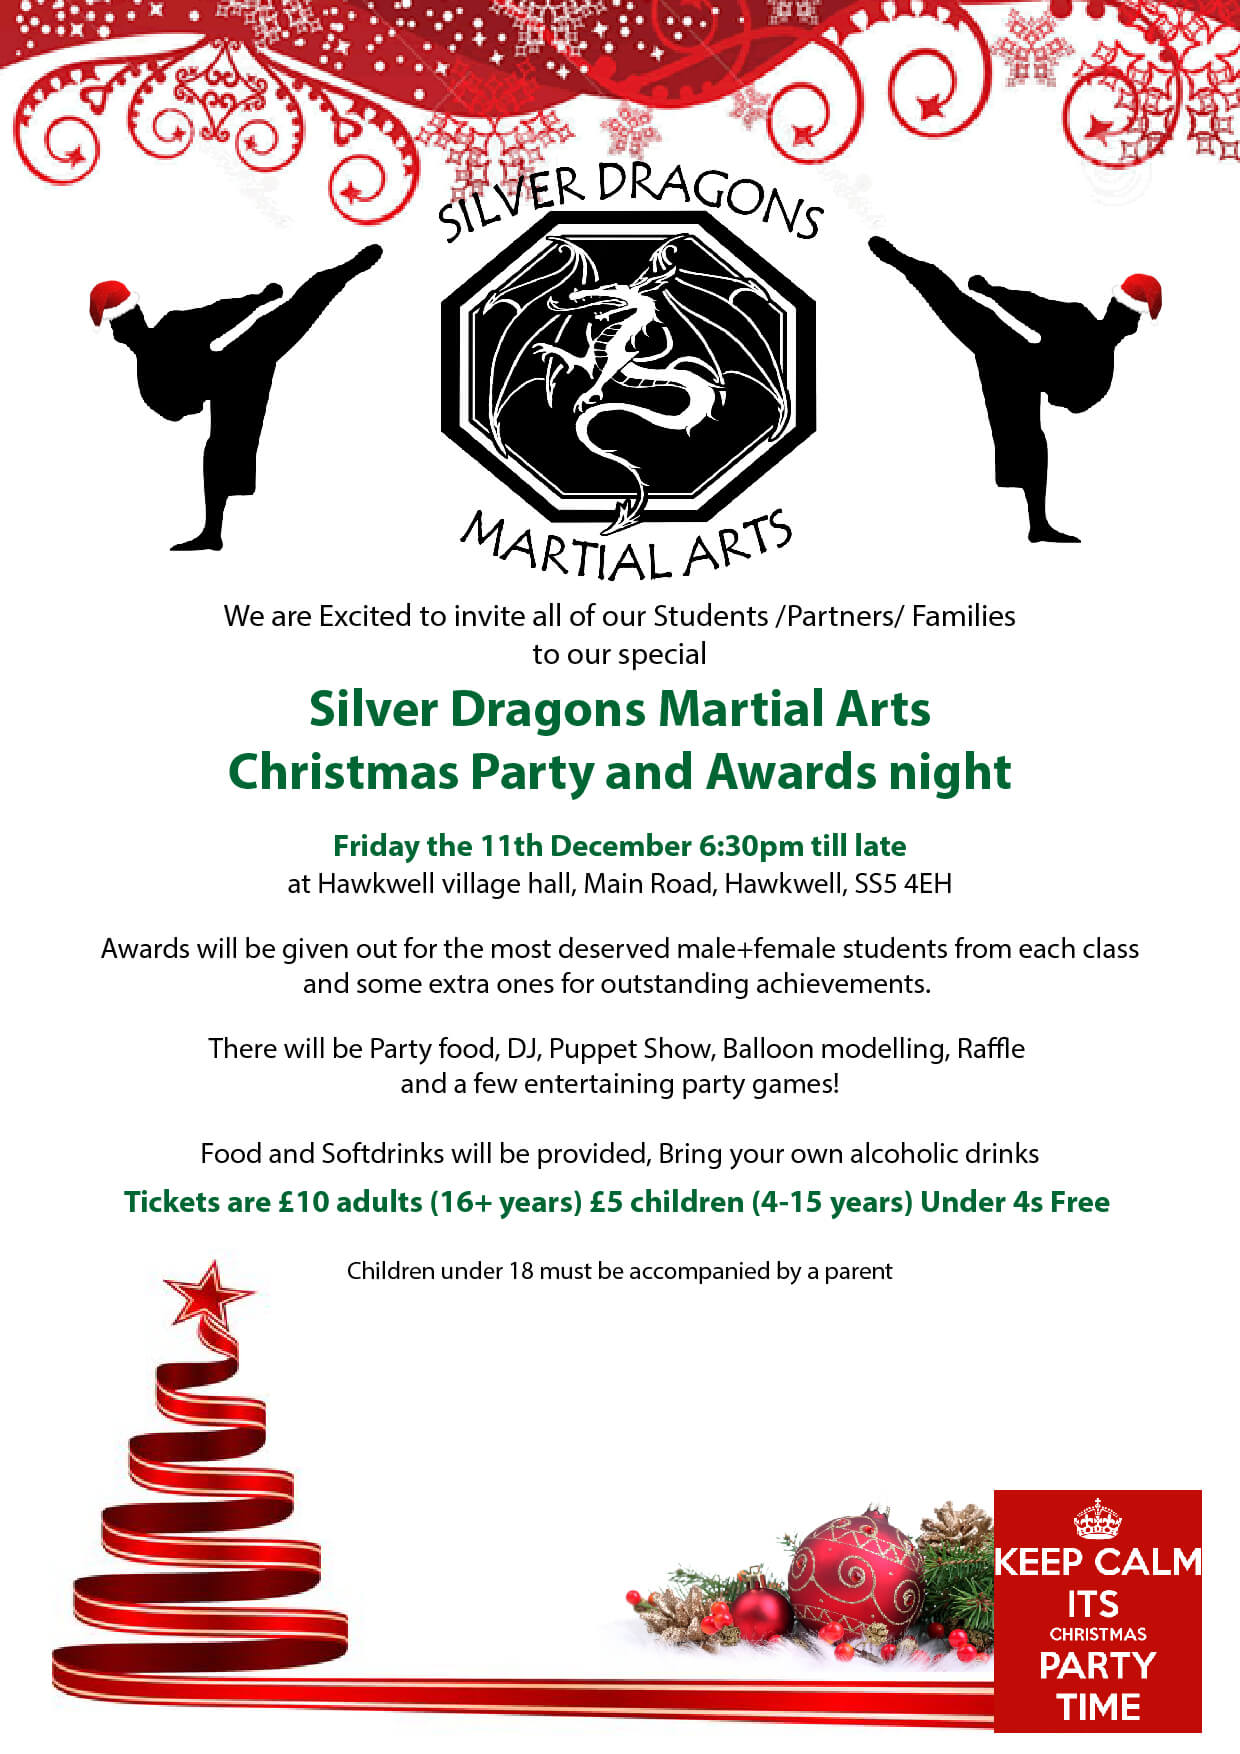 Silver Dragons Christmas party 2015